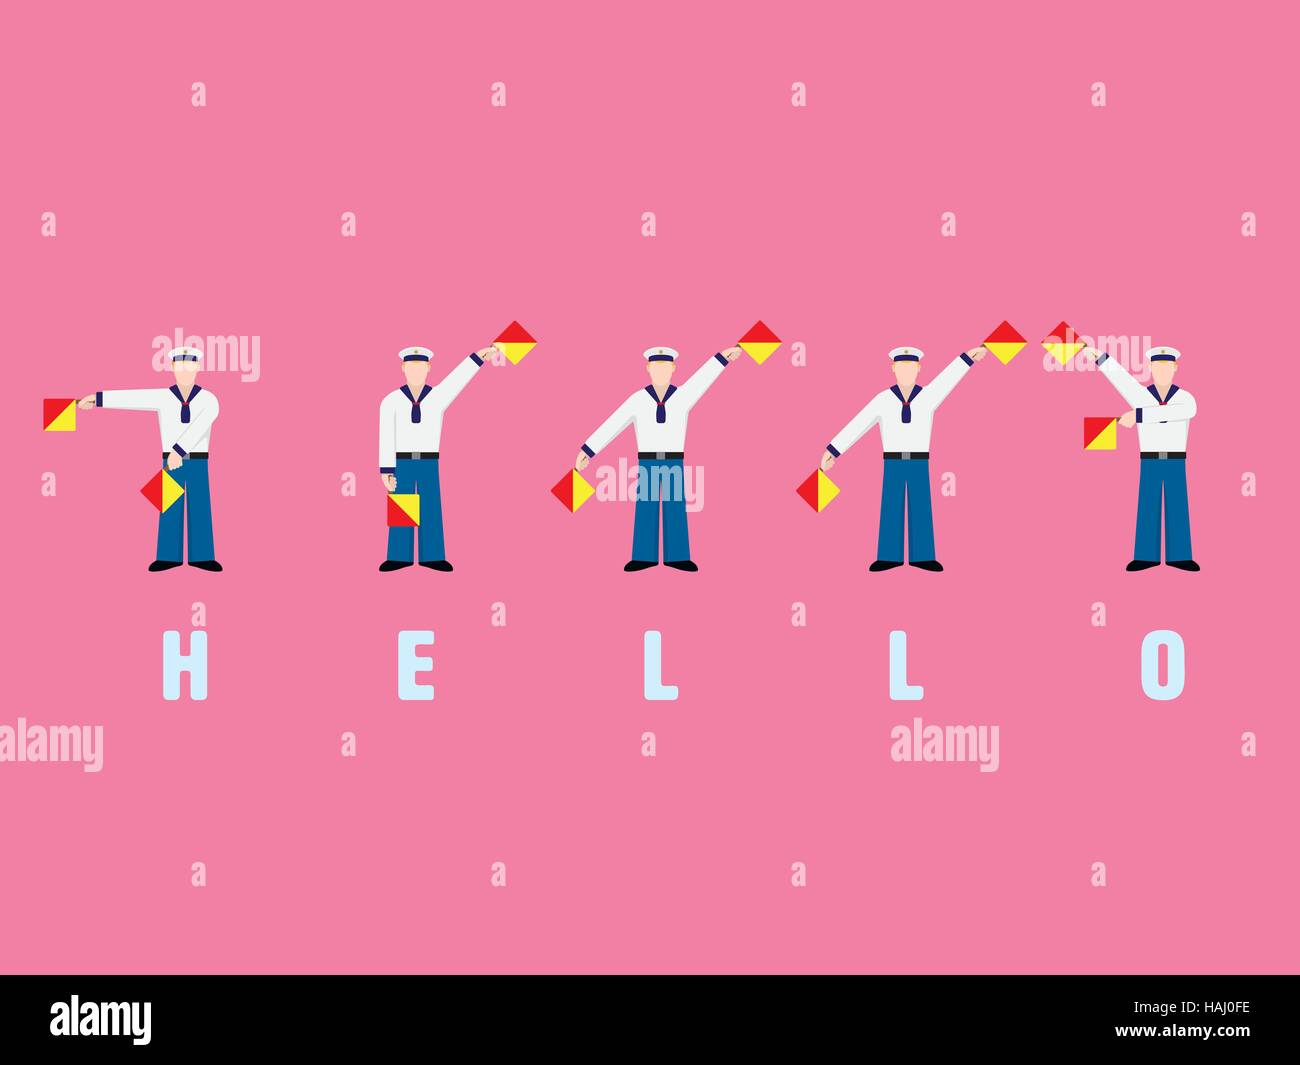 Flat design sailors signaling the word HELLO with flag semaphore system - Stock Image